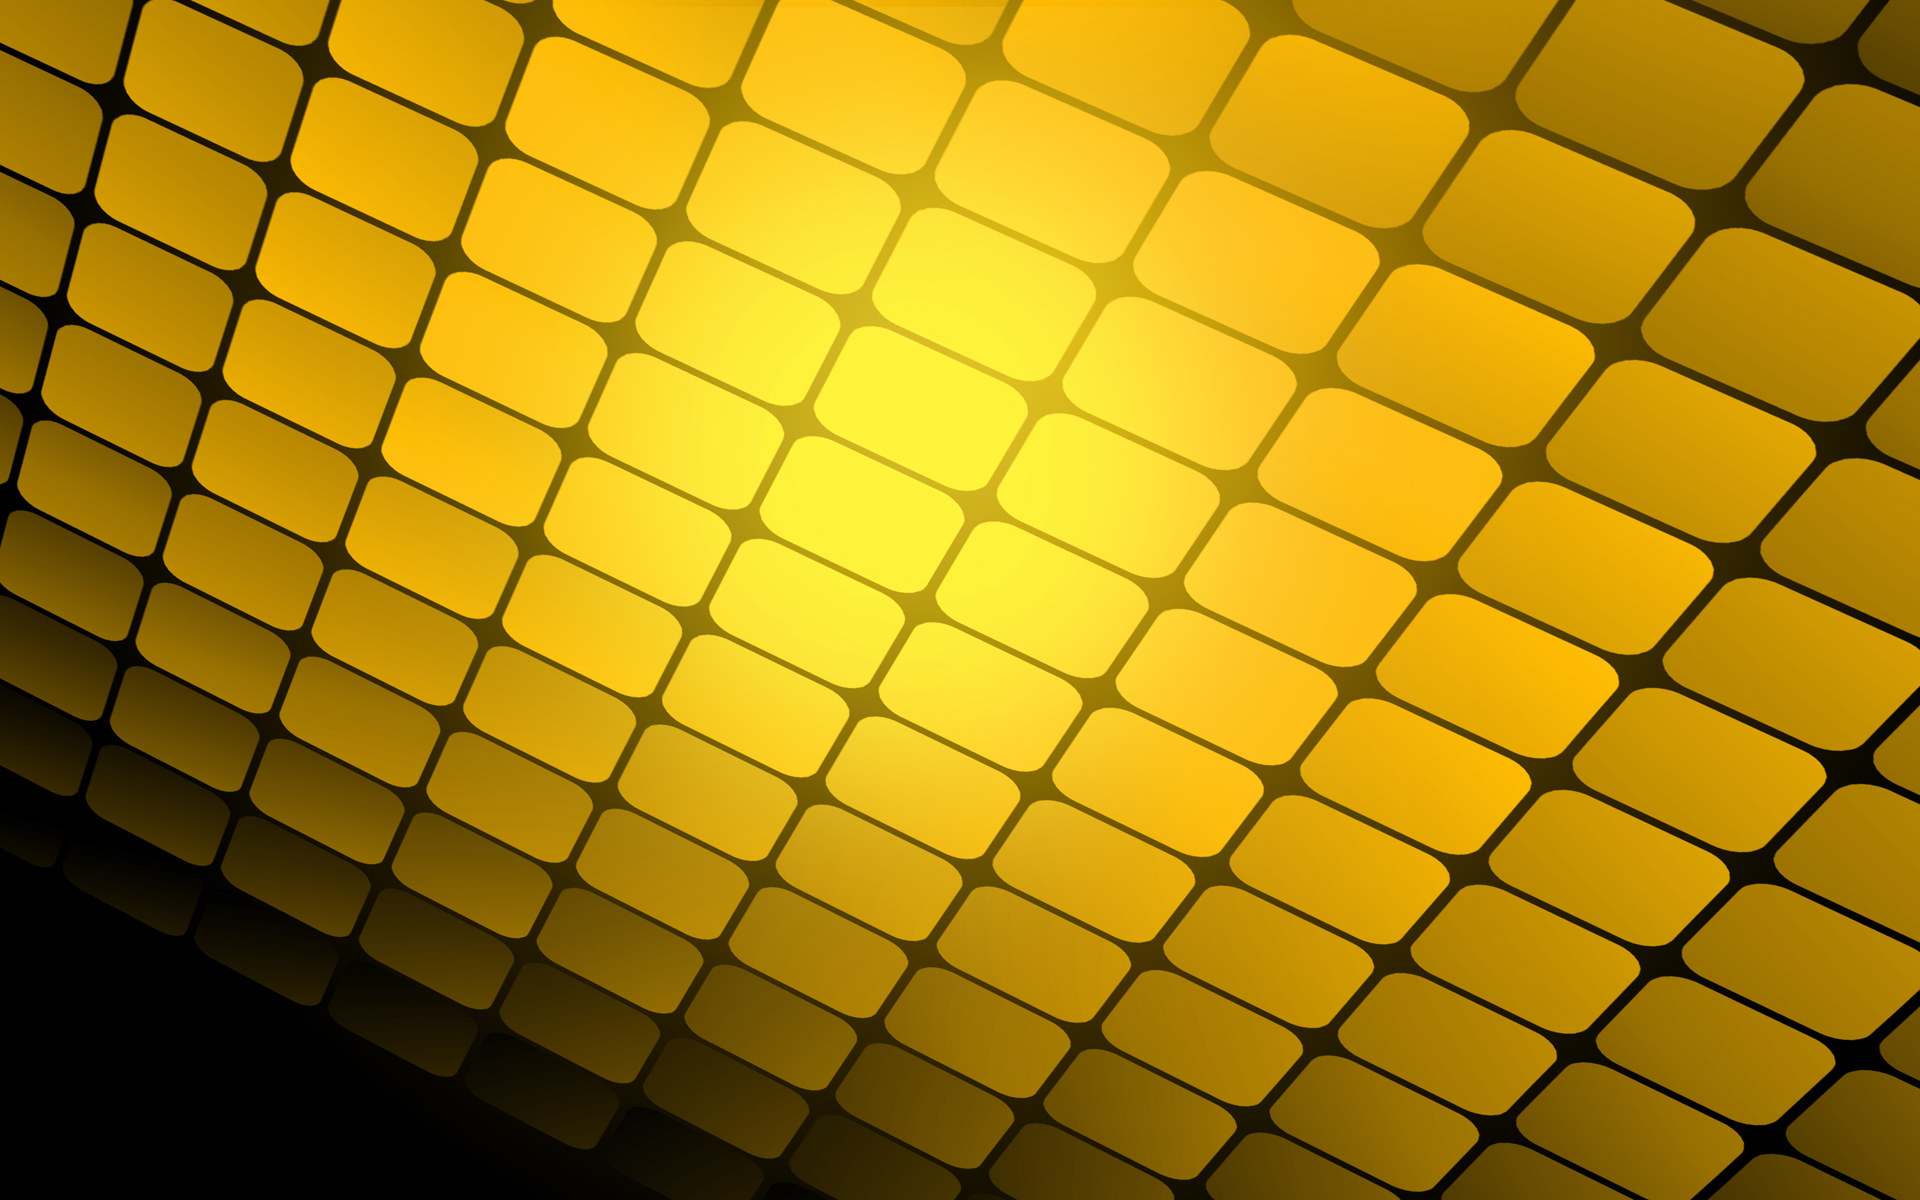 26912-black-and-yellow-abstract-background